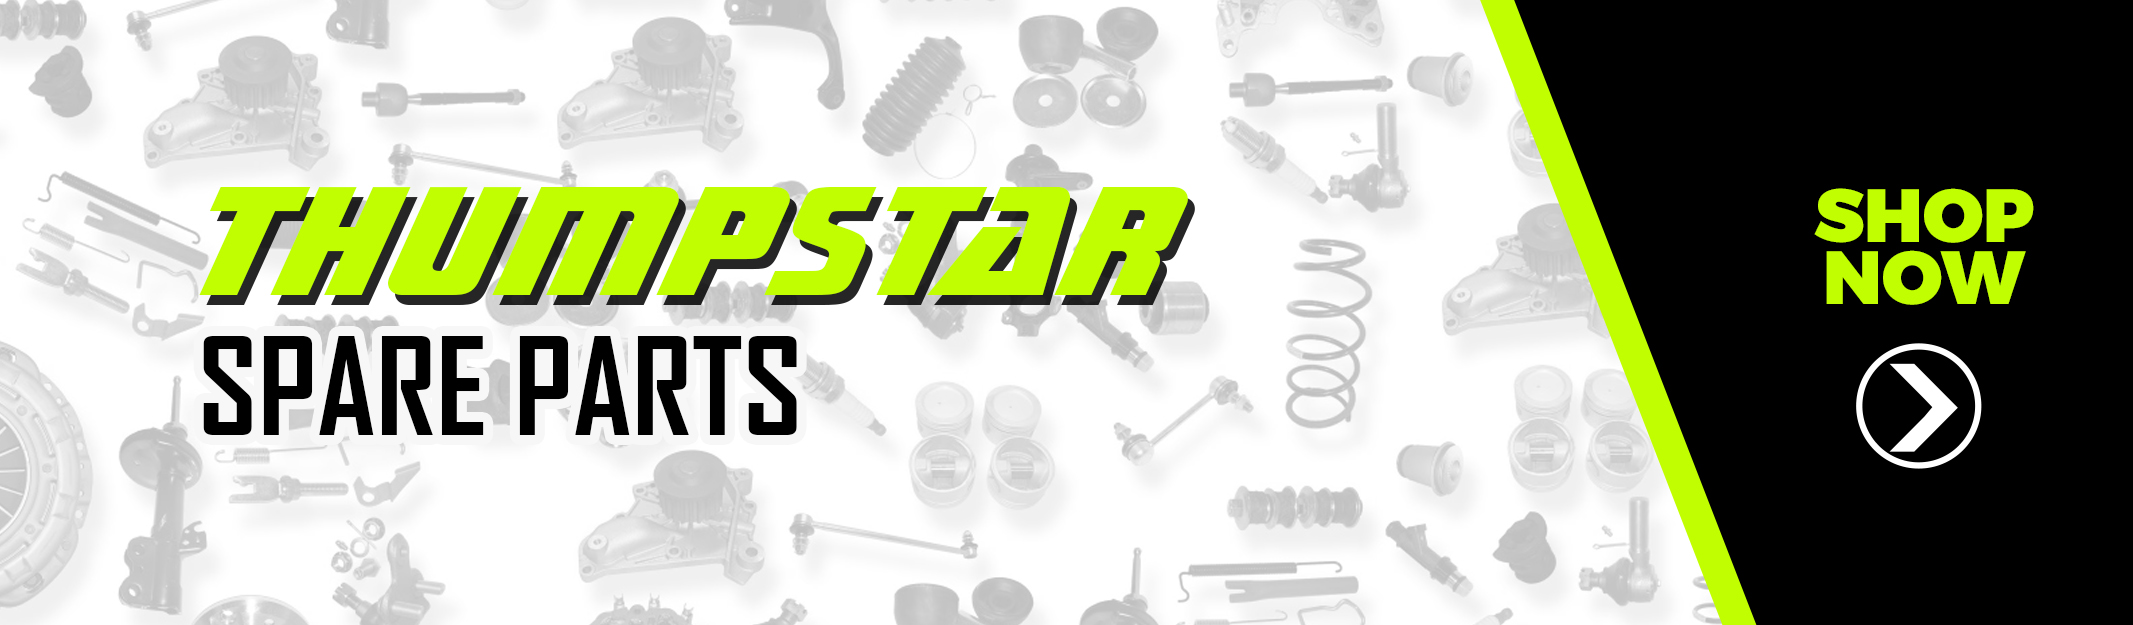 Thumpstar Spare Parts